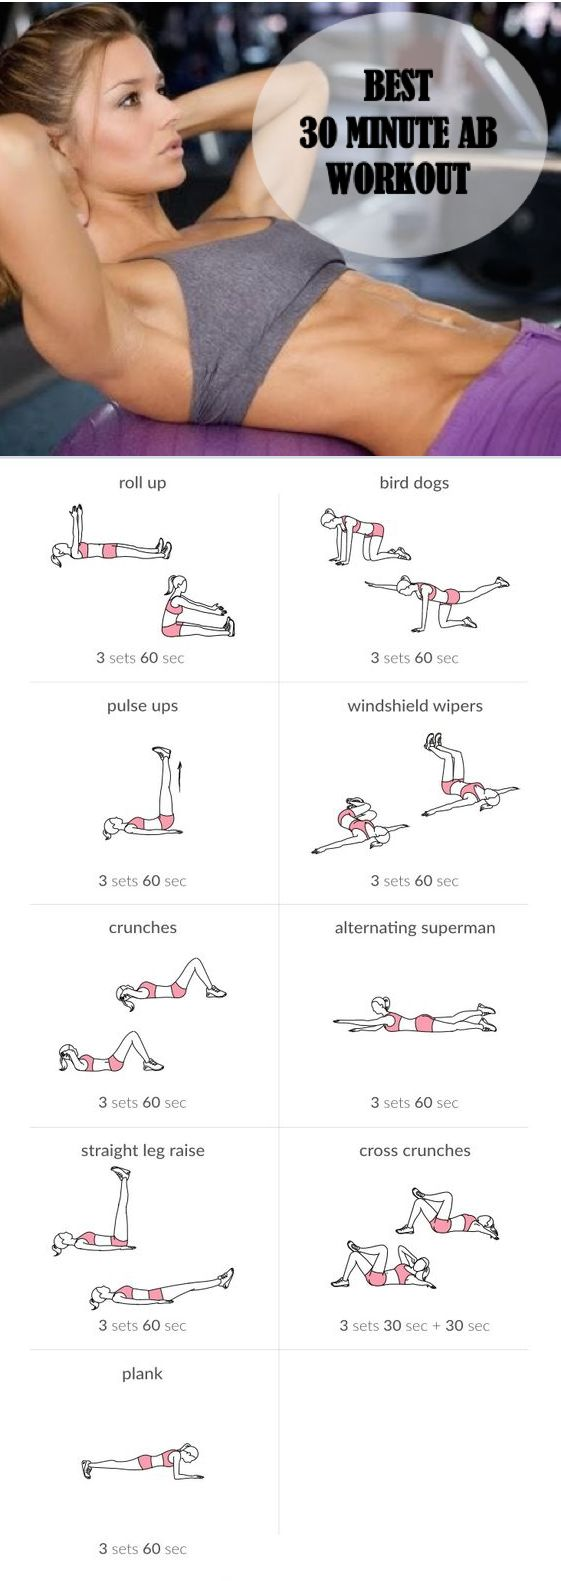 Great 30 minute ab workout to do to get ready for bathing suit season. Best part of this workout is that you can do it at home with no equipment!  The post AB WORKOUT appeared first on Lunchpails and